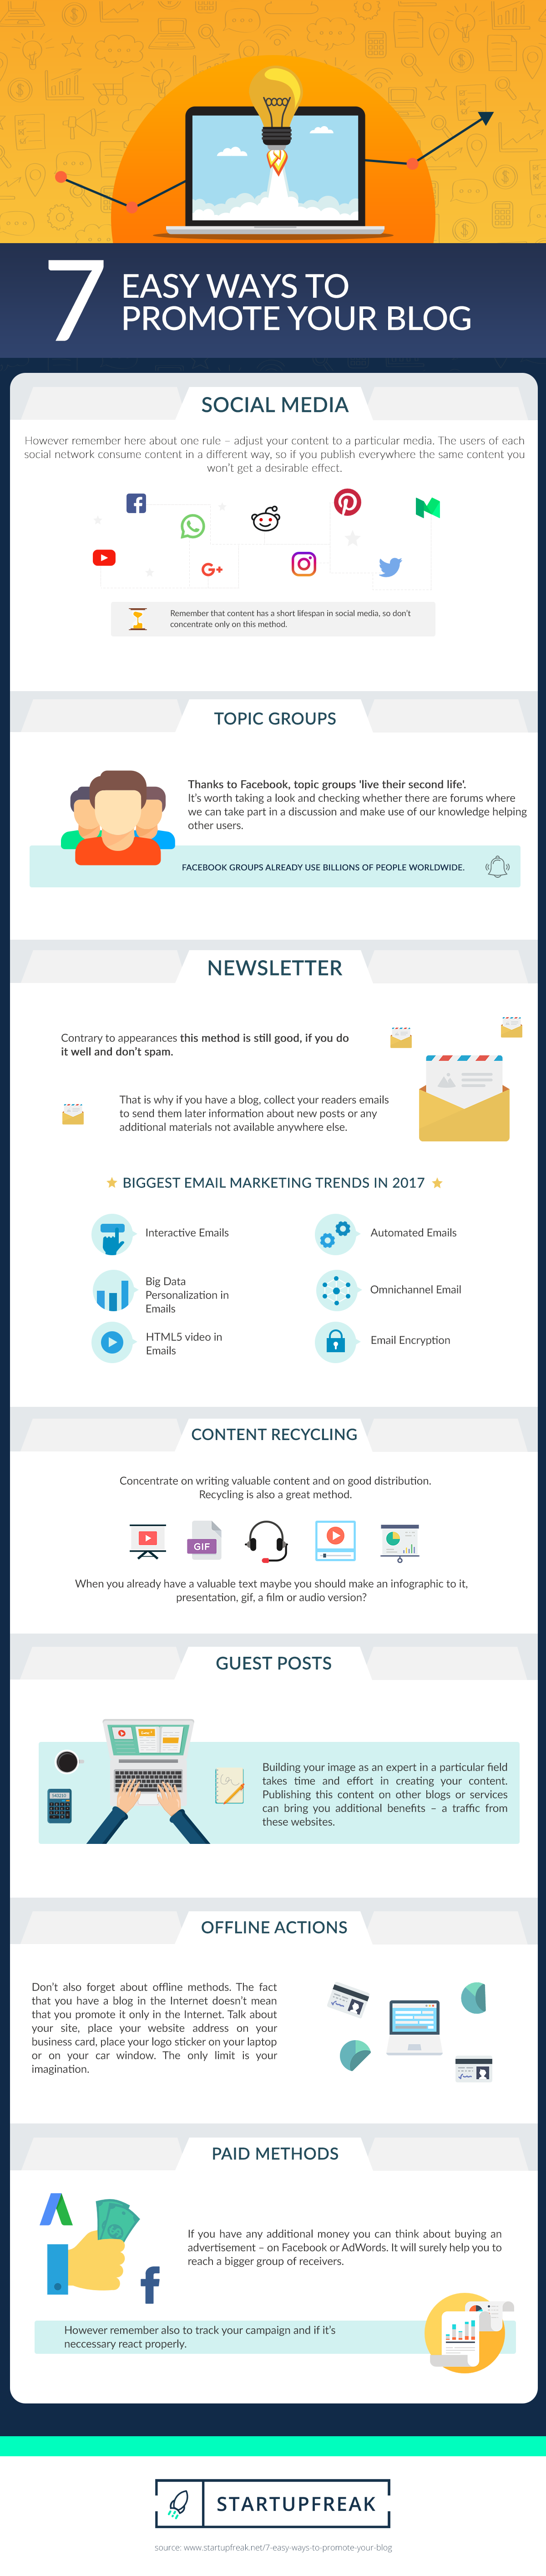 7 easy ways to promote your blog infographic